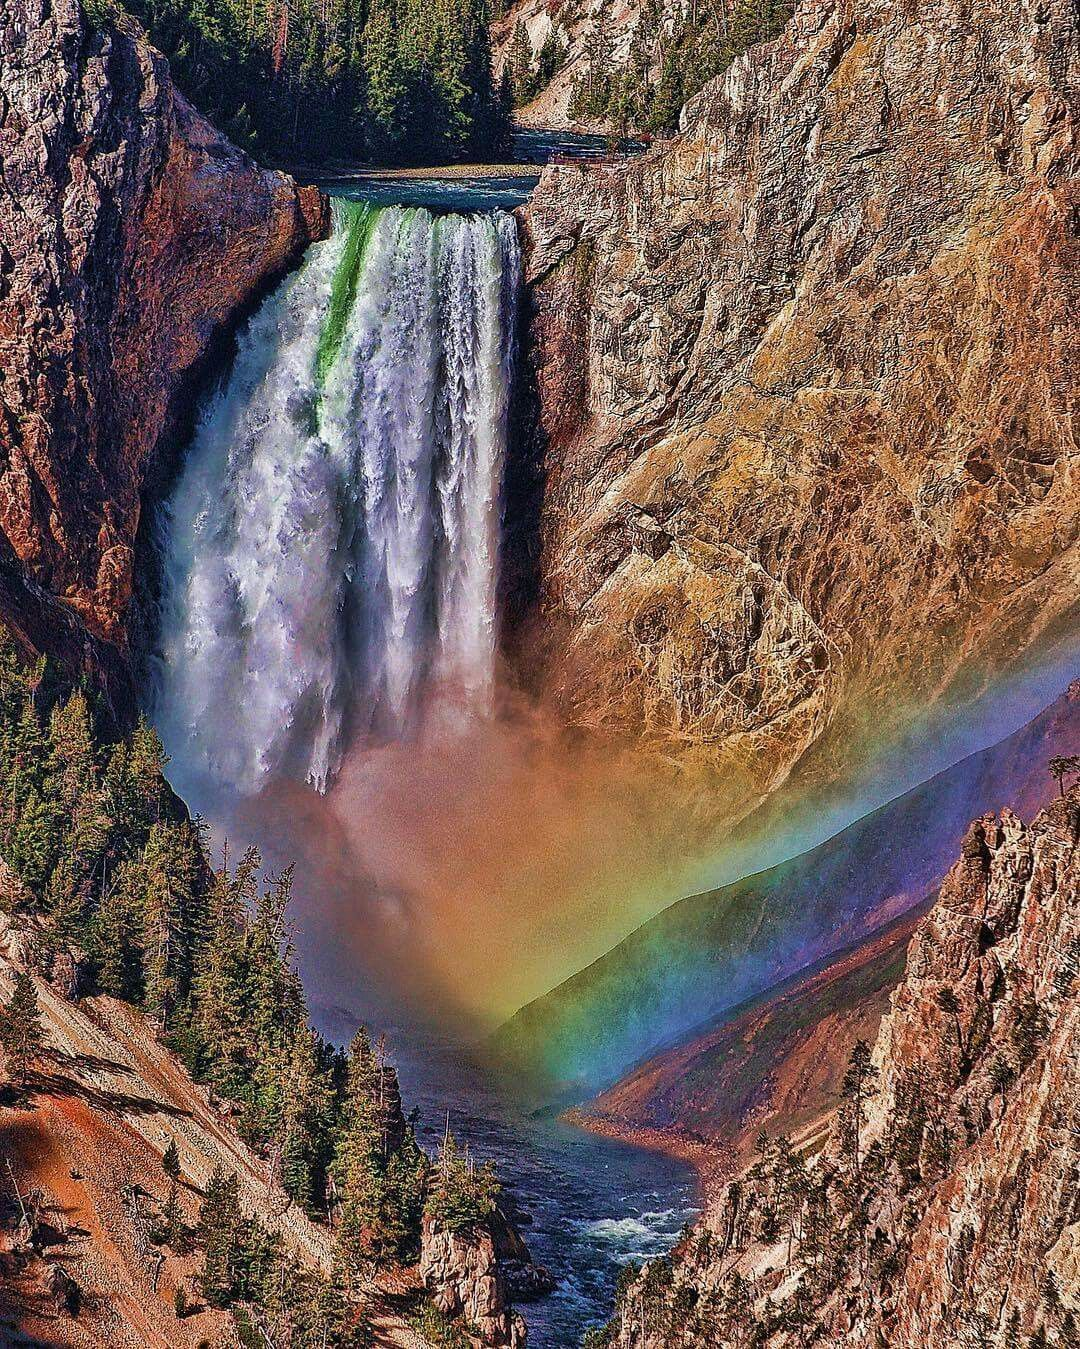 Artist Point in Yellowstone National Park comes by its